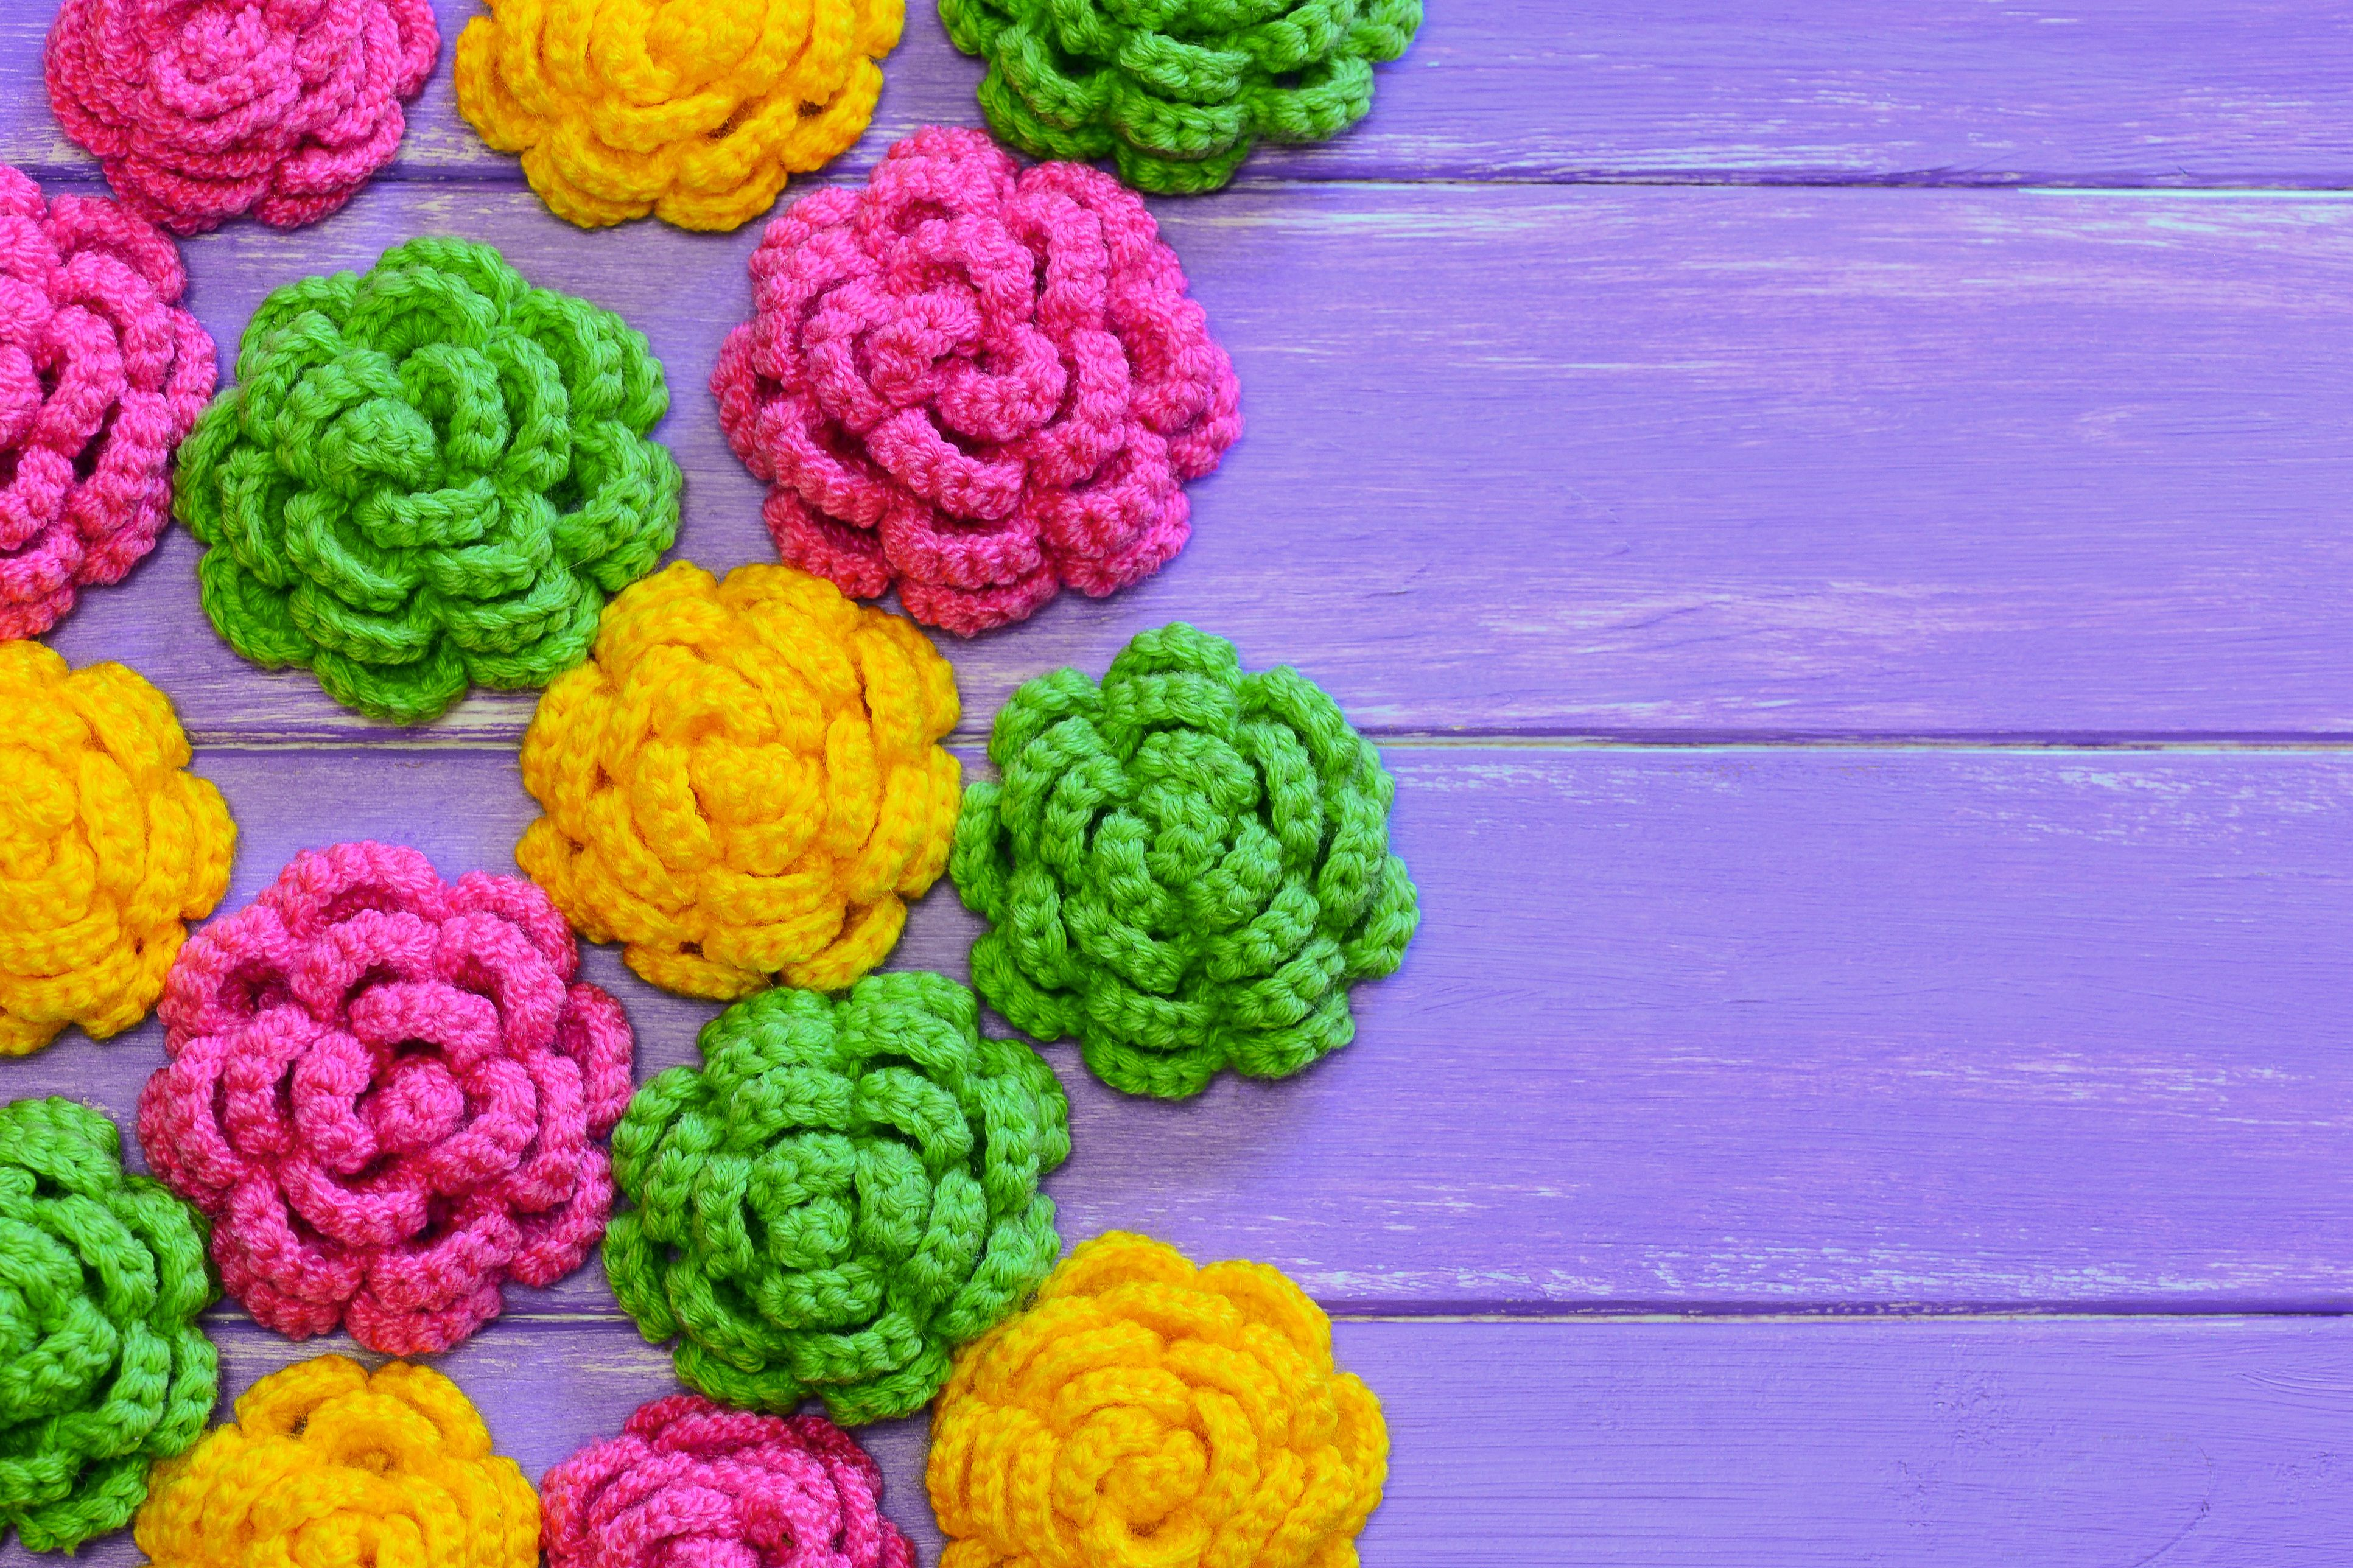 Crocheted flowers. Yellow, pink and green crocheted flowers. Multicolored floral ornaments. Bright background. Closeup